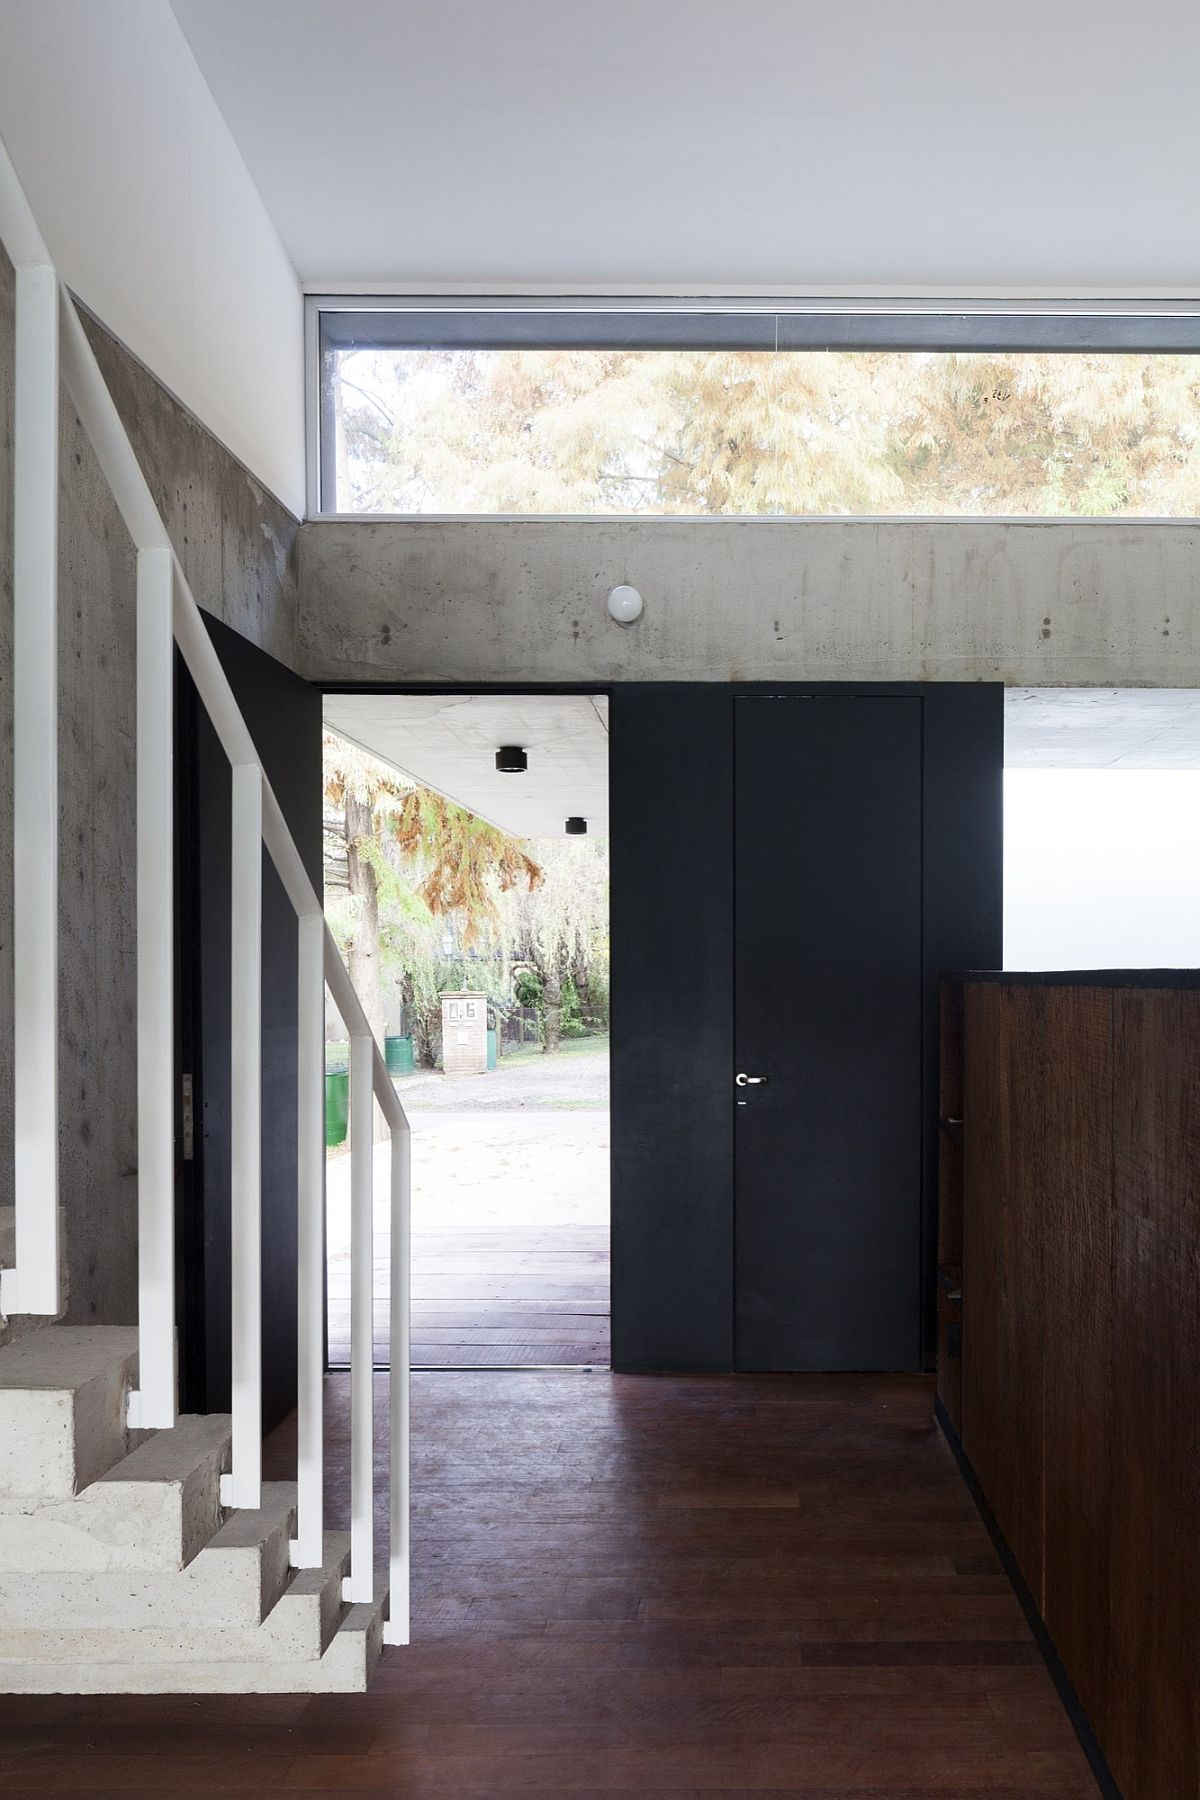 Expposed concrete brings a rough texture to the polished interior